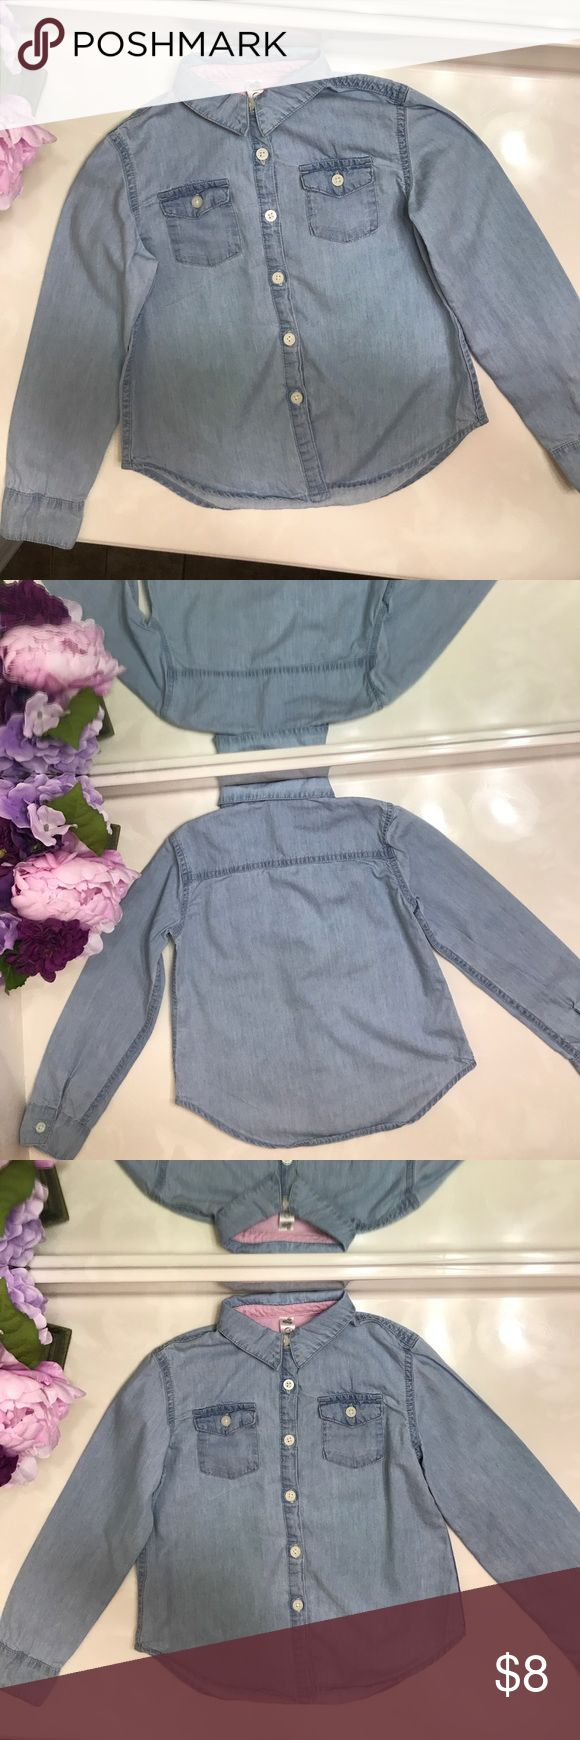 Girls Button Down Shirt Great Shirt, super lightweight! A fashion piece for any little girl ✨✨✨ in great condition worn once! Size 6x. Listed as jessica Simpson for exposure . No stains or defects Jessica Simpson Shirts & Tops Button Down Shirts